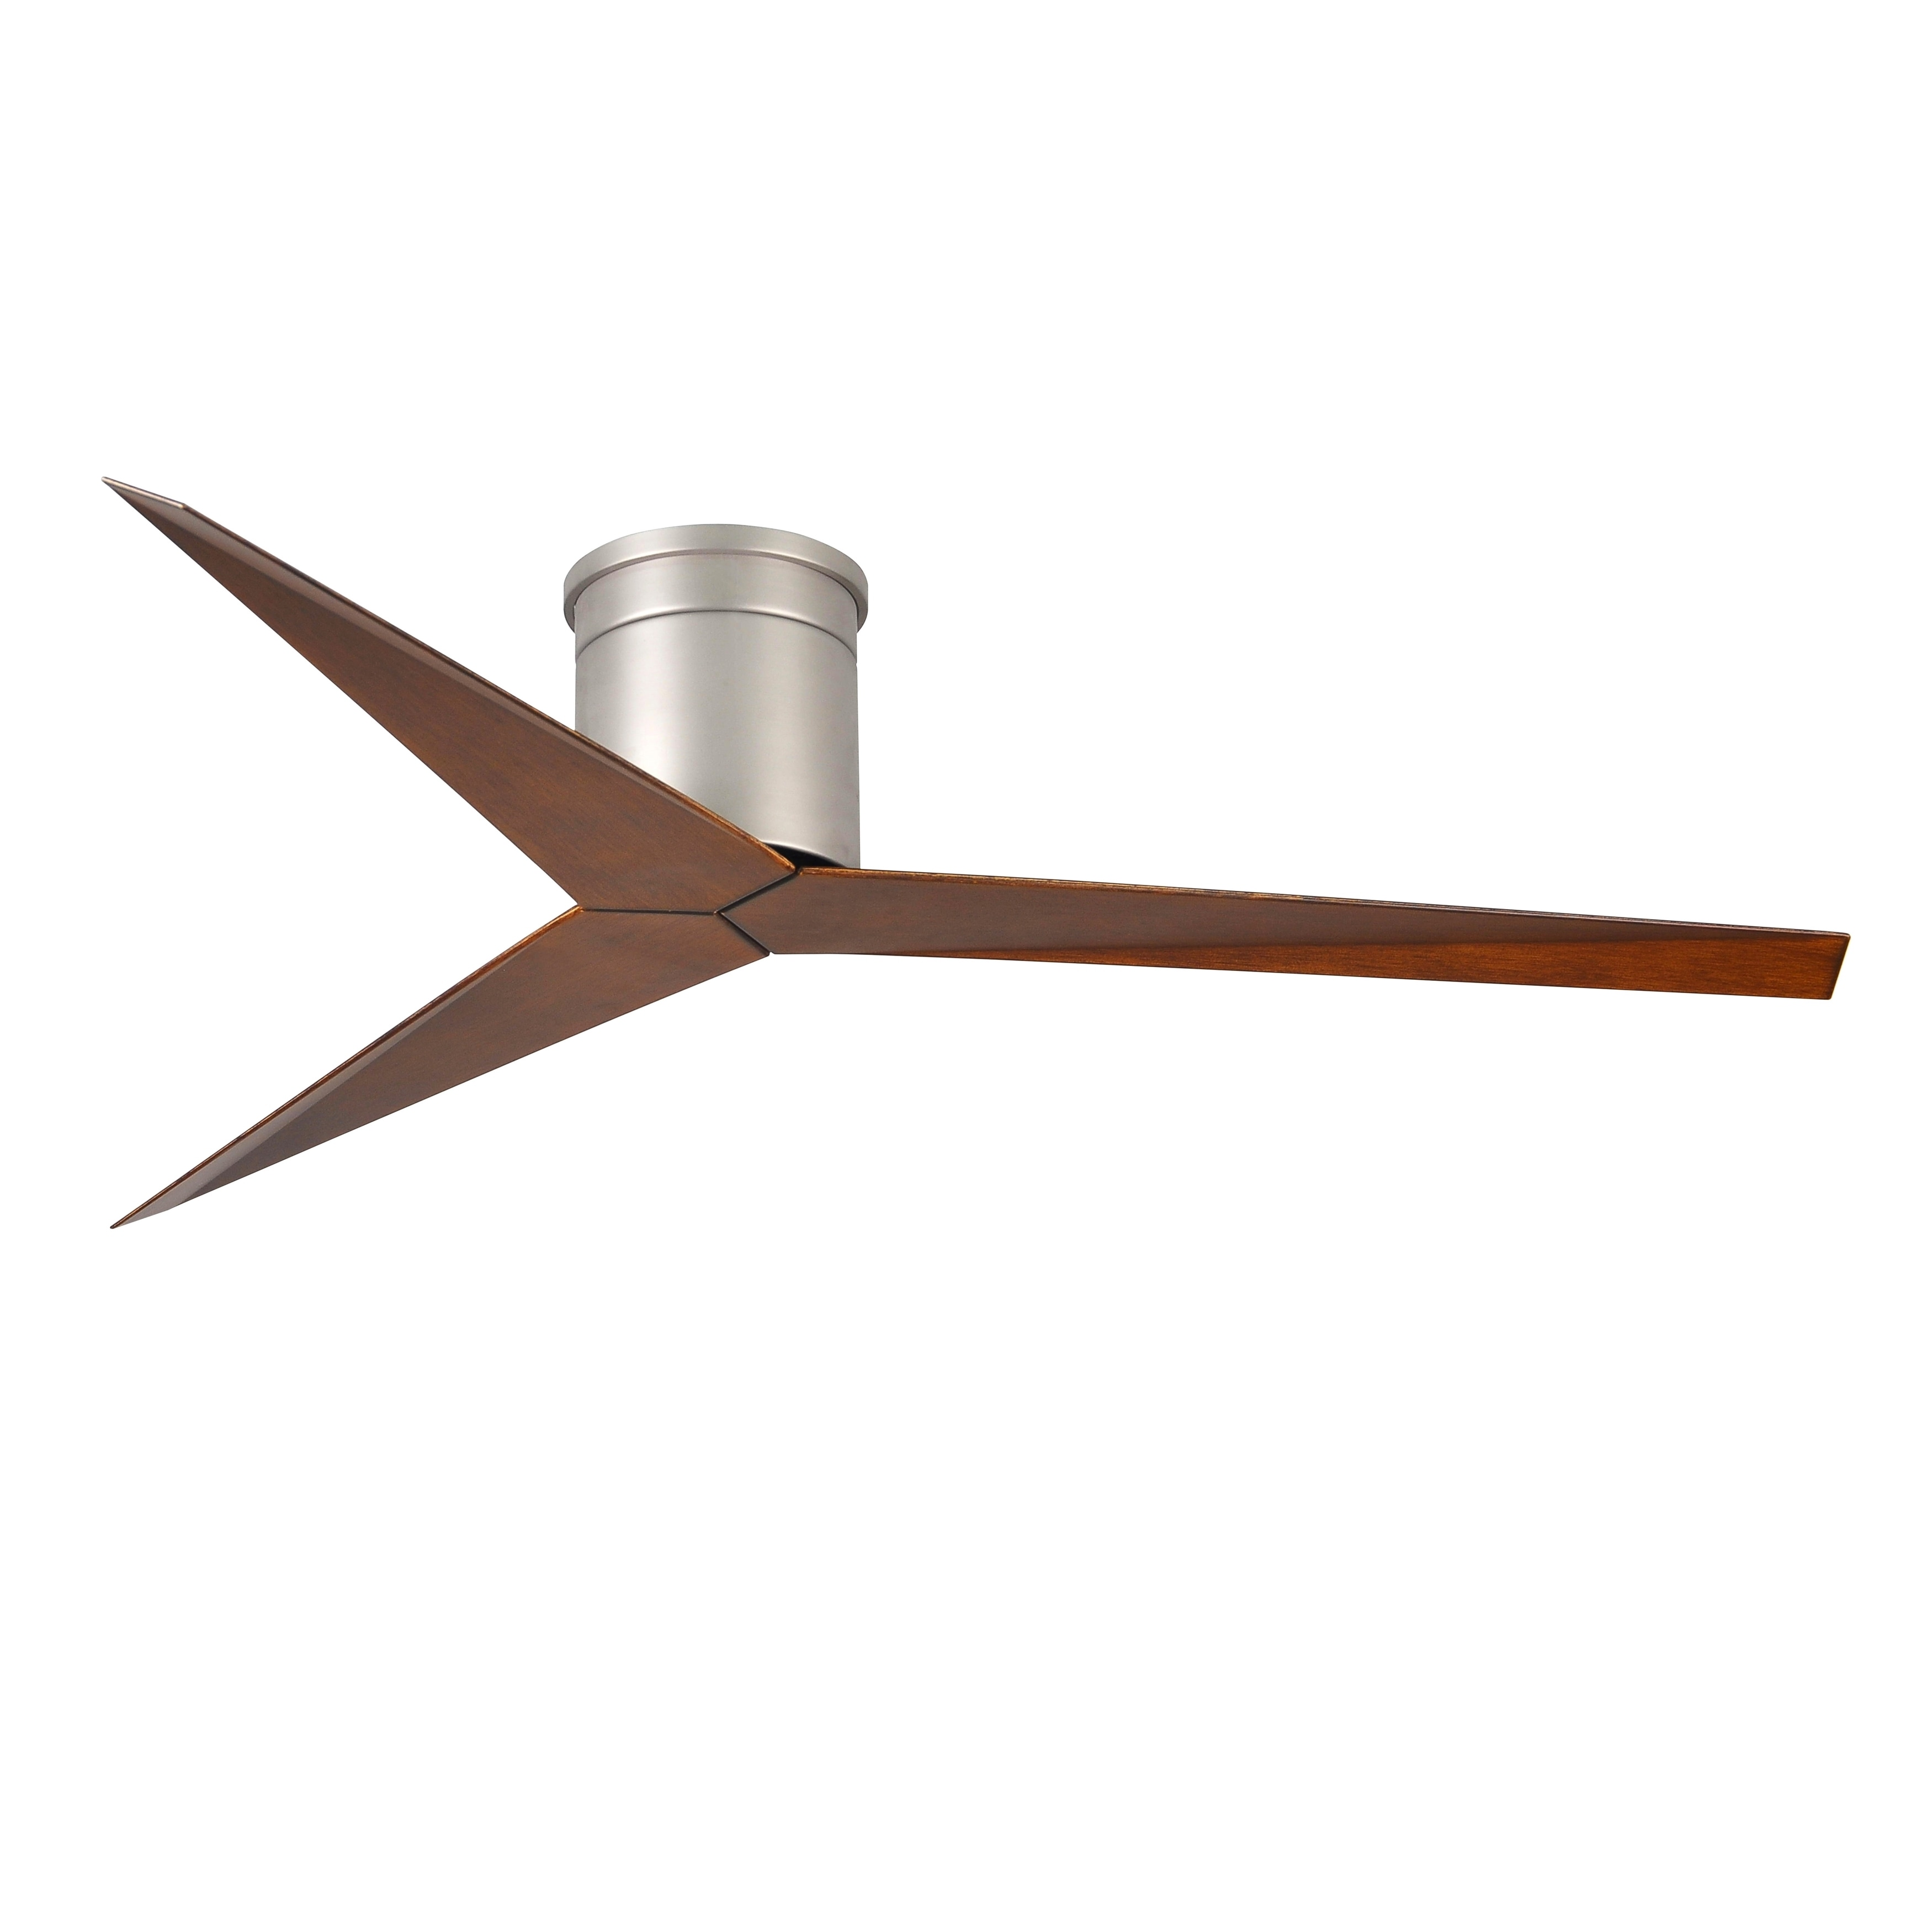 Shop Matthews Fan Company Eliza H 3 Blade Hugger Paddle Brushed Hunter Parts Department Nickel Ceiling With Walnut Tone Blades Brown Ships To Canada